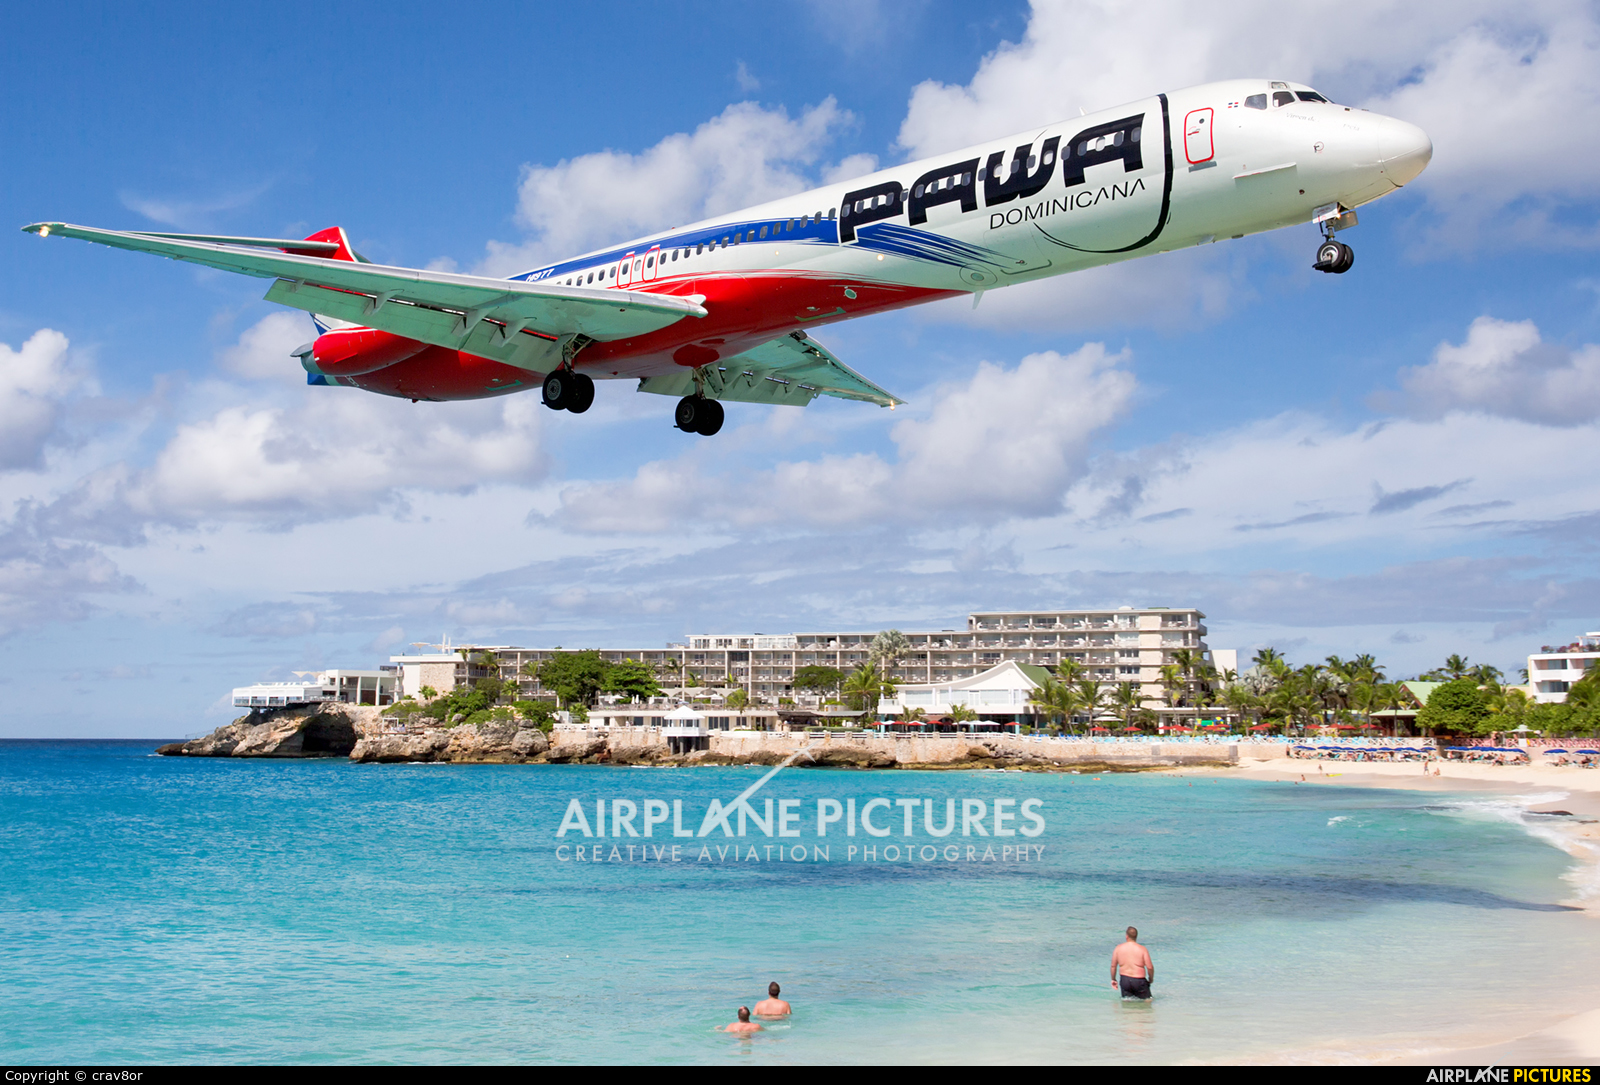 PAWA Dominicana HI977 aircraft at Sint Maarten - Princess Juliana Intl